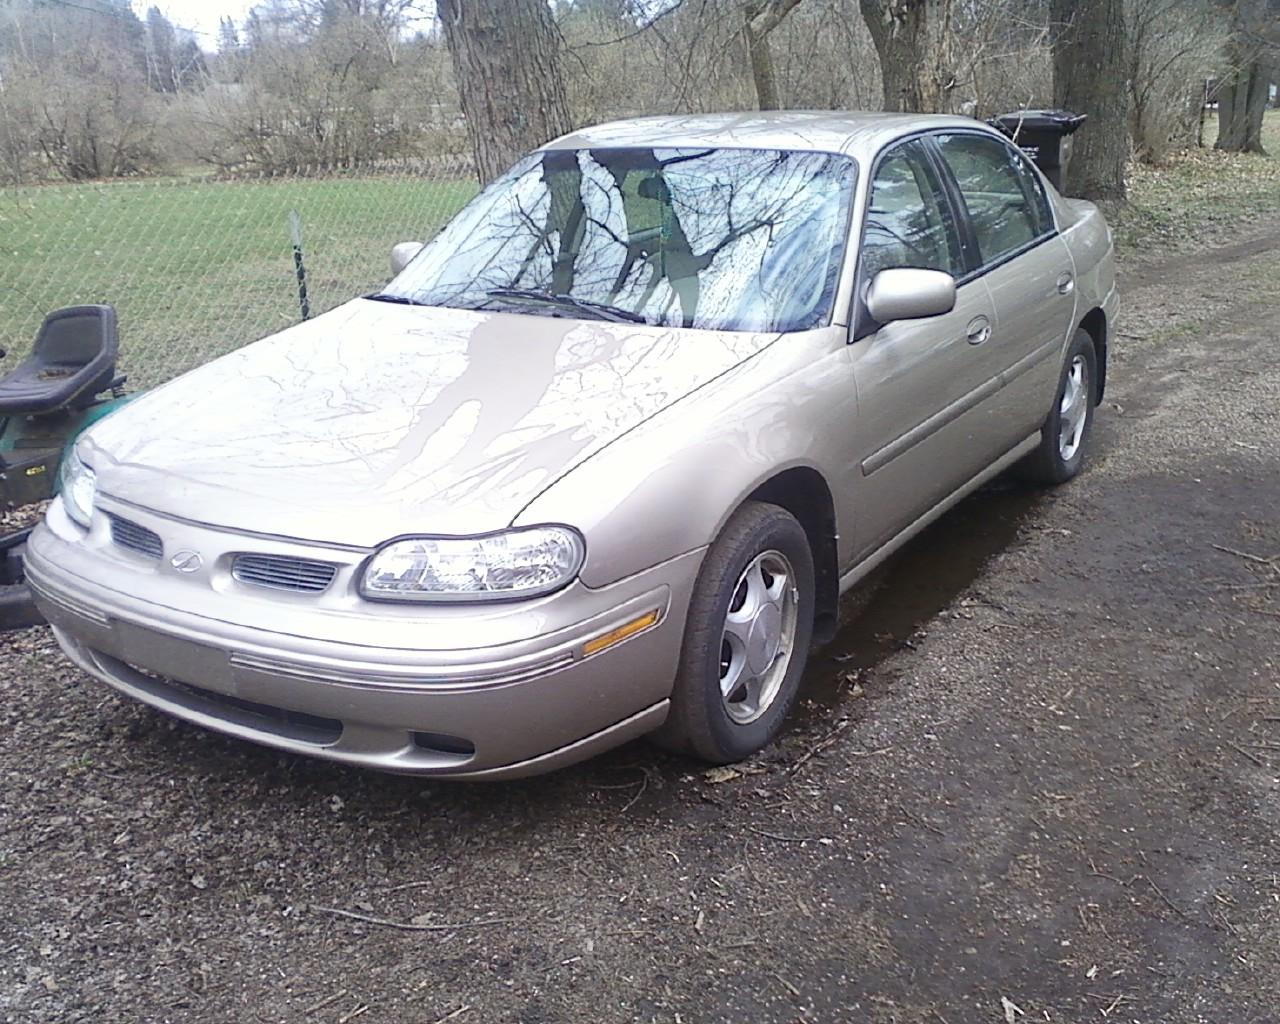 1998 Oldsmobile Cutlass #21